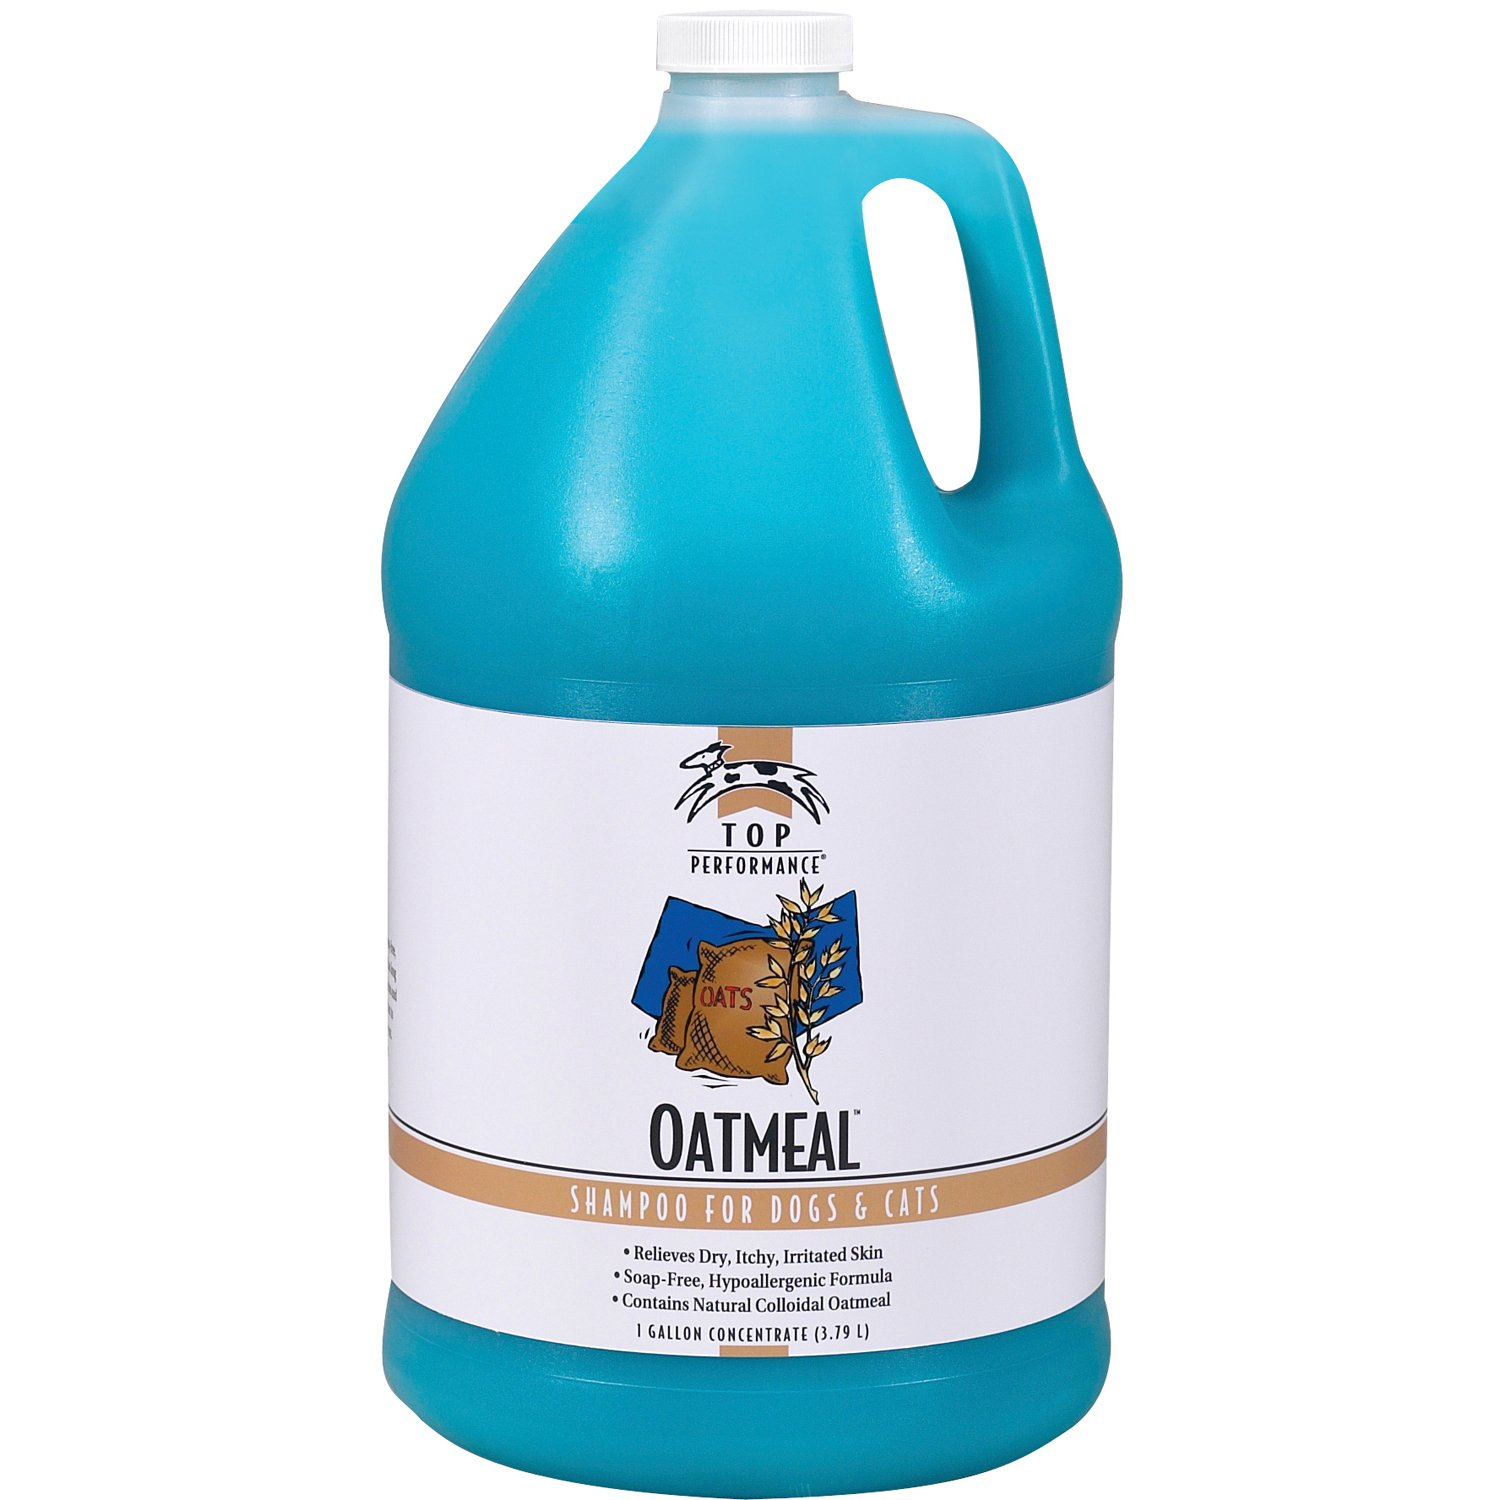 Top Performance Oatmeal Dog and Cat Shampoo, 1-Gallon by Top Performance